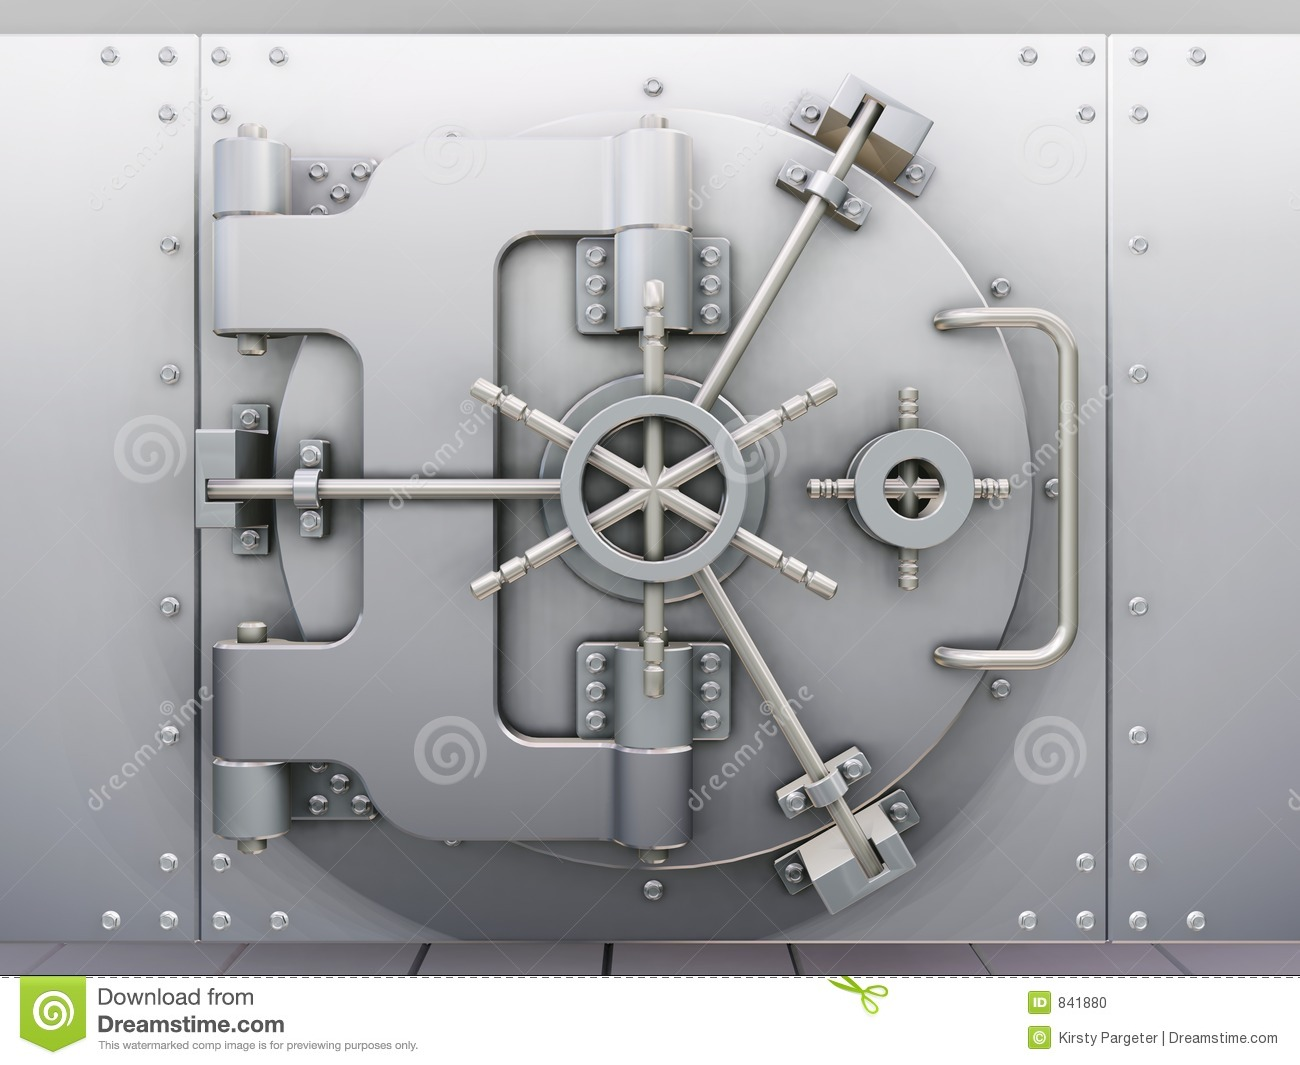 Bank Vault Stock Photo Image 841880